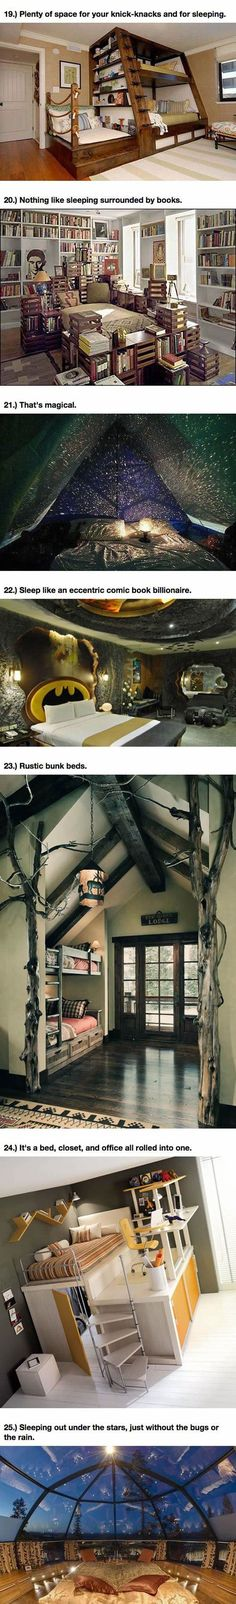 25 Amazing Beds Will Make You Wish It Was Nap Time - The Meta Picture